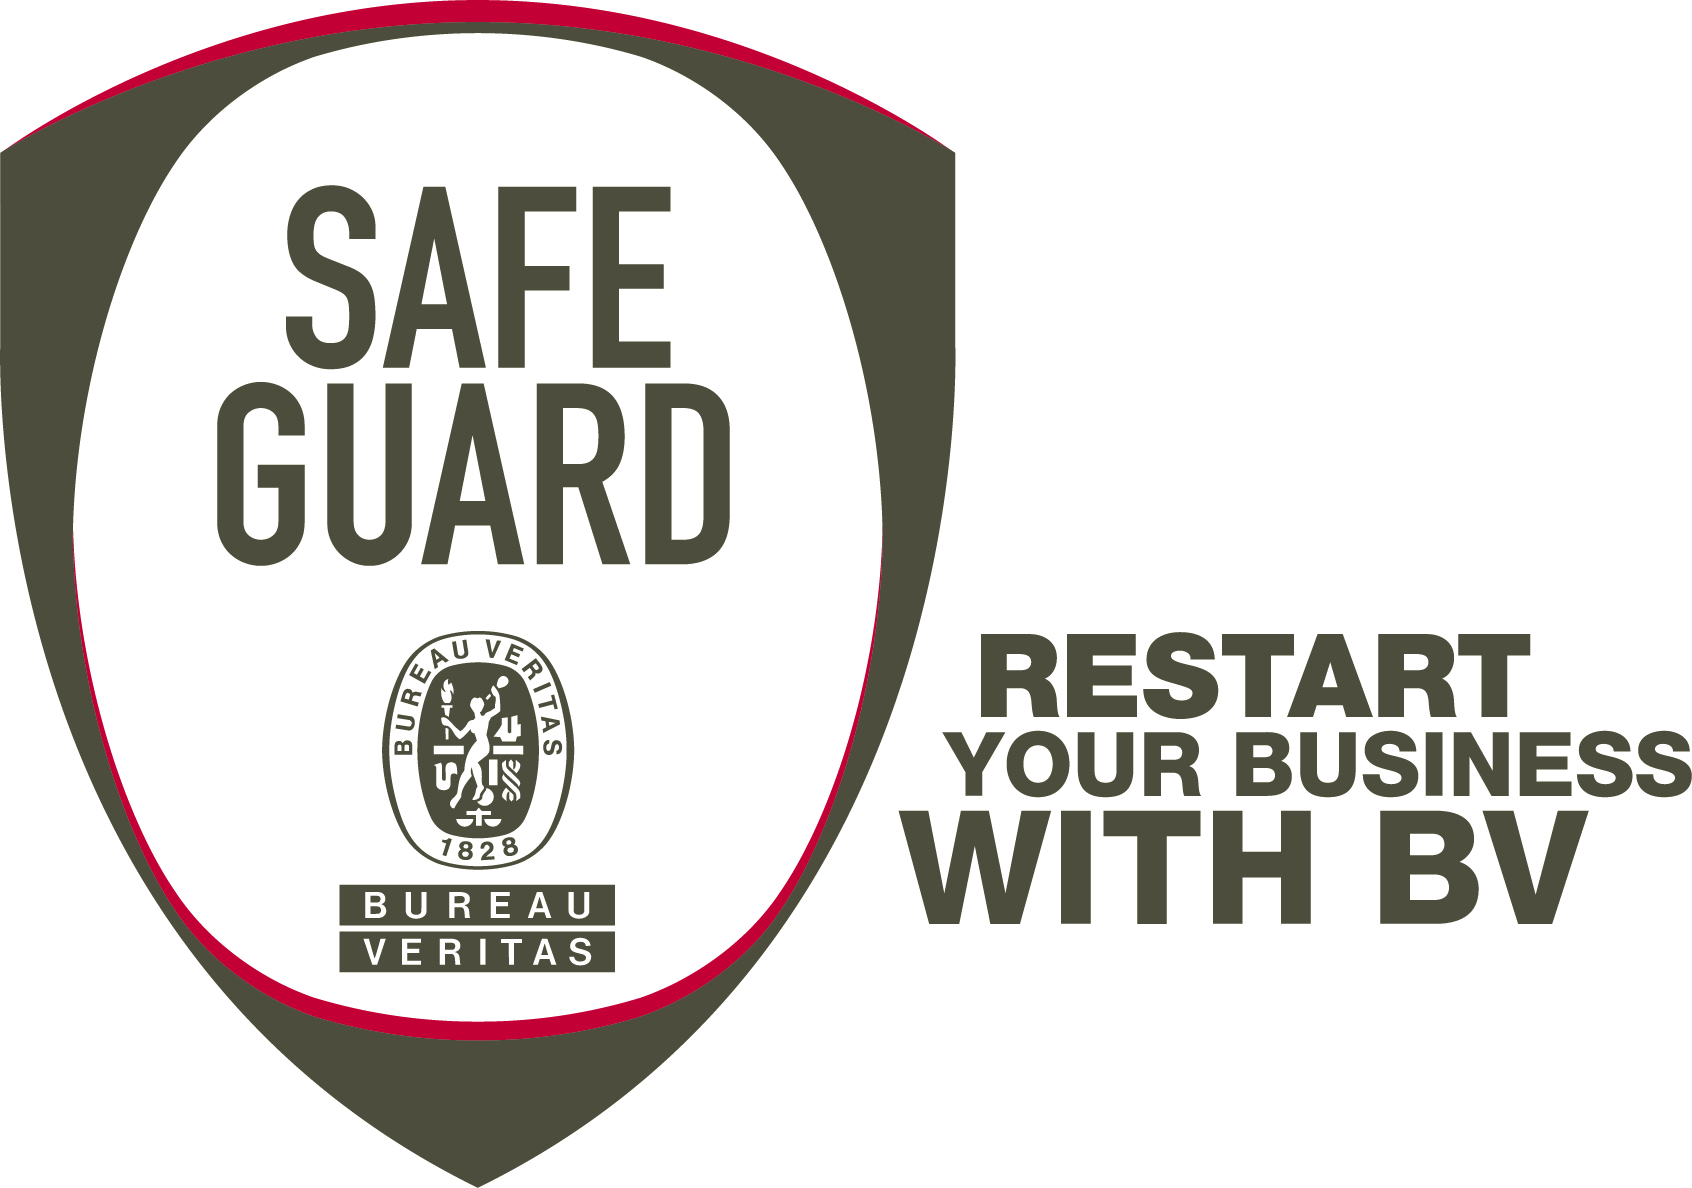 Safeguard Label by Bureau Veritas